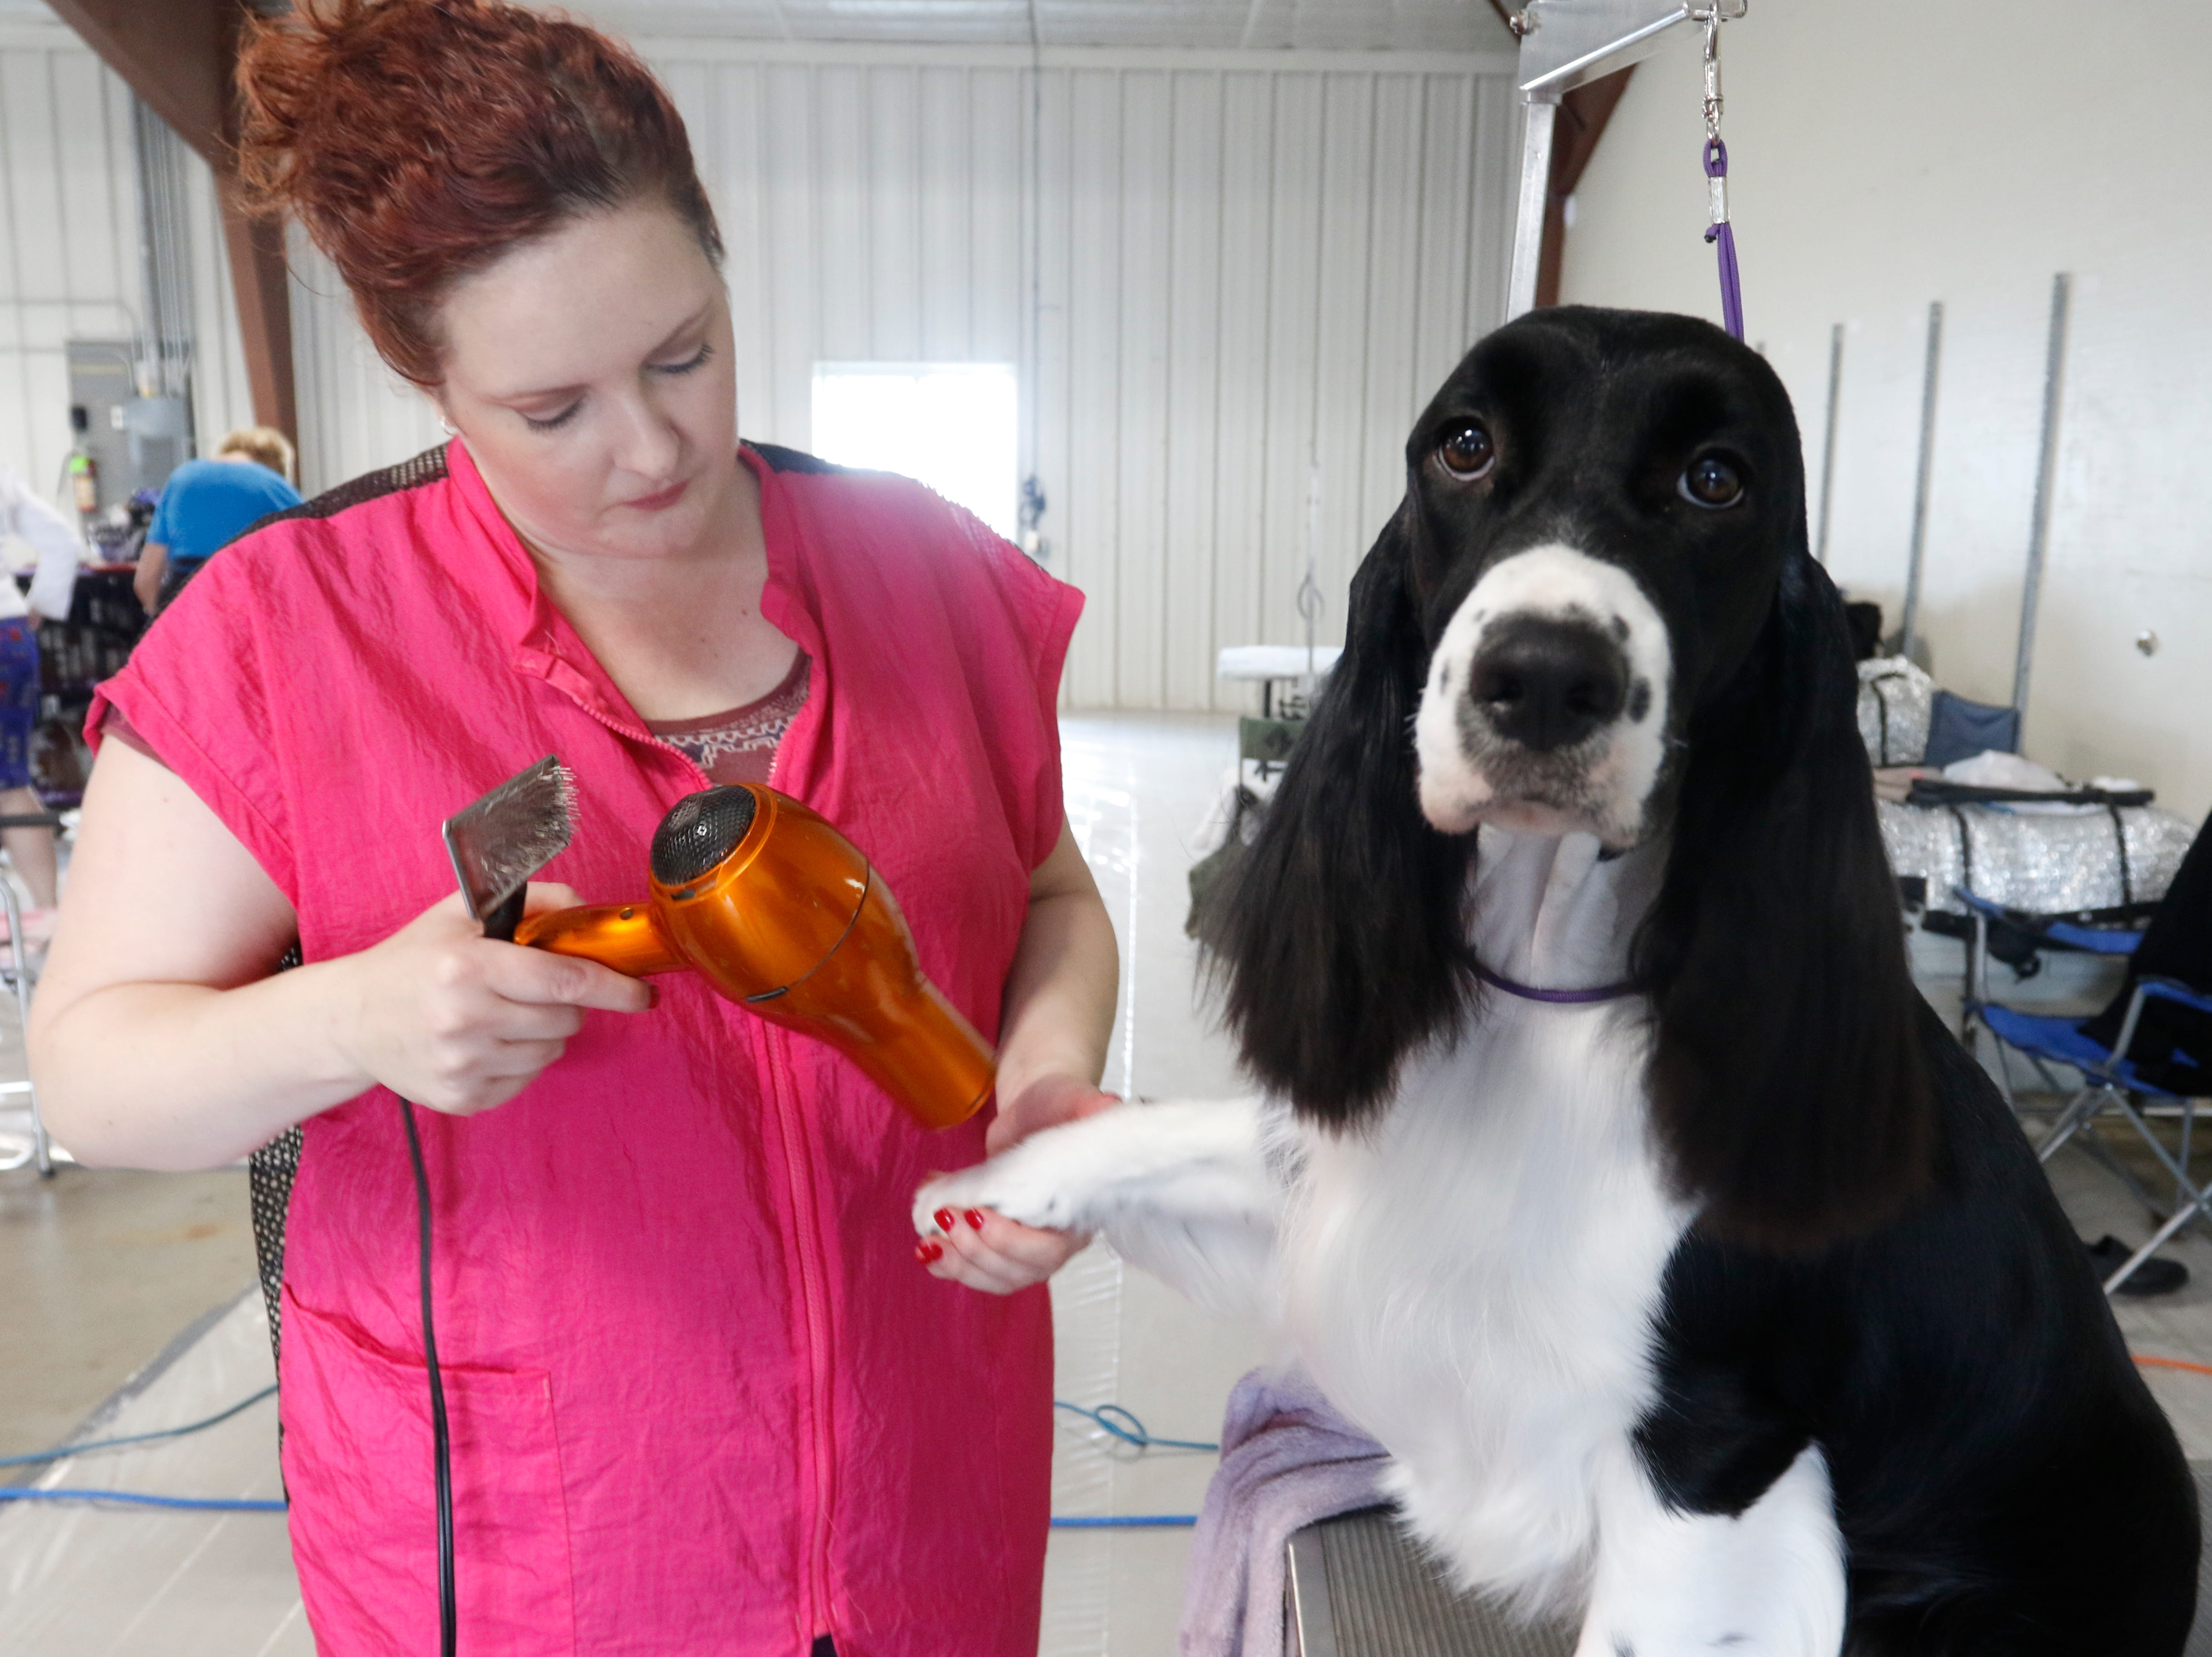 Violet, an English springer spaniel, is groomed by Sarah Willms before competing in confirmation during the Marshfield Area Kennel Club's All-Breed Dog Show, Obedience Trials and Rally Trials at the Central Wisconsin Fairgrounds in Marshfield Saturday, August 18, 2018.